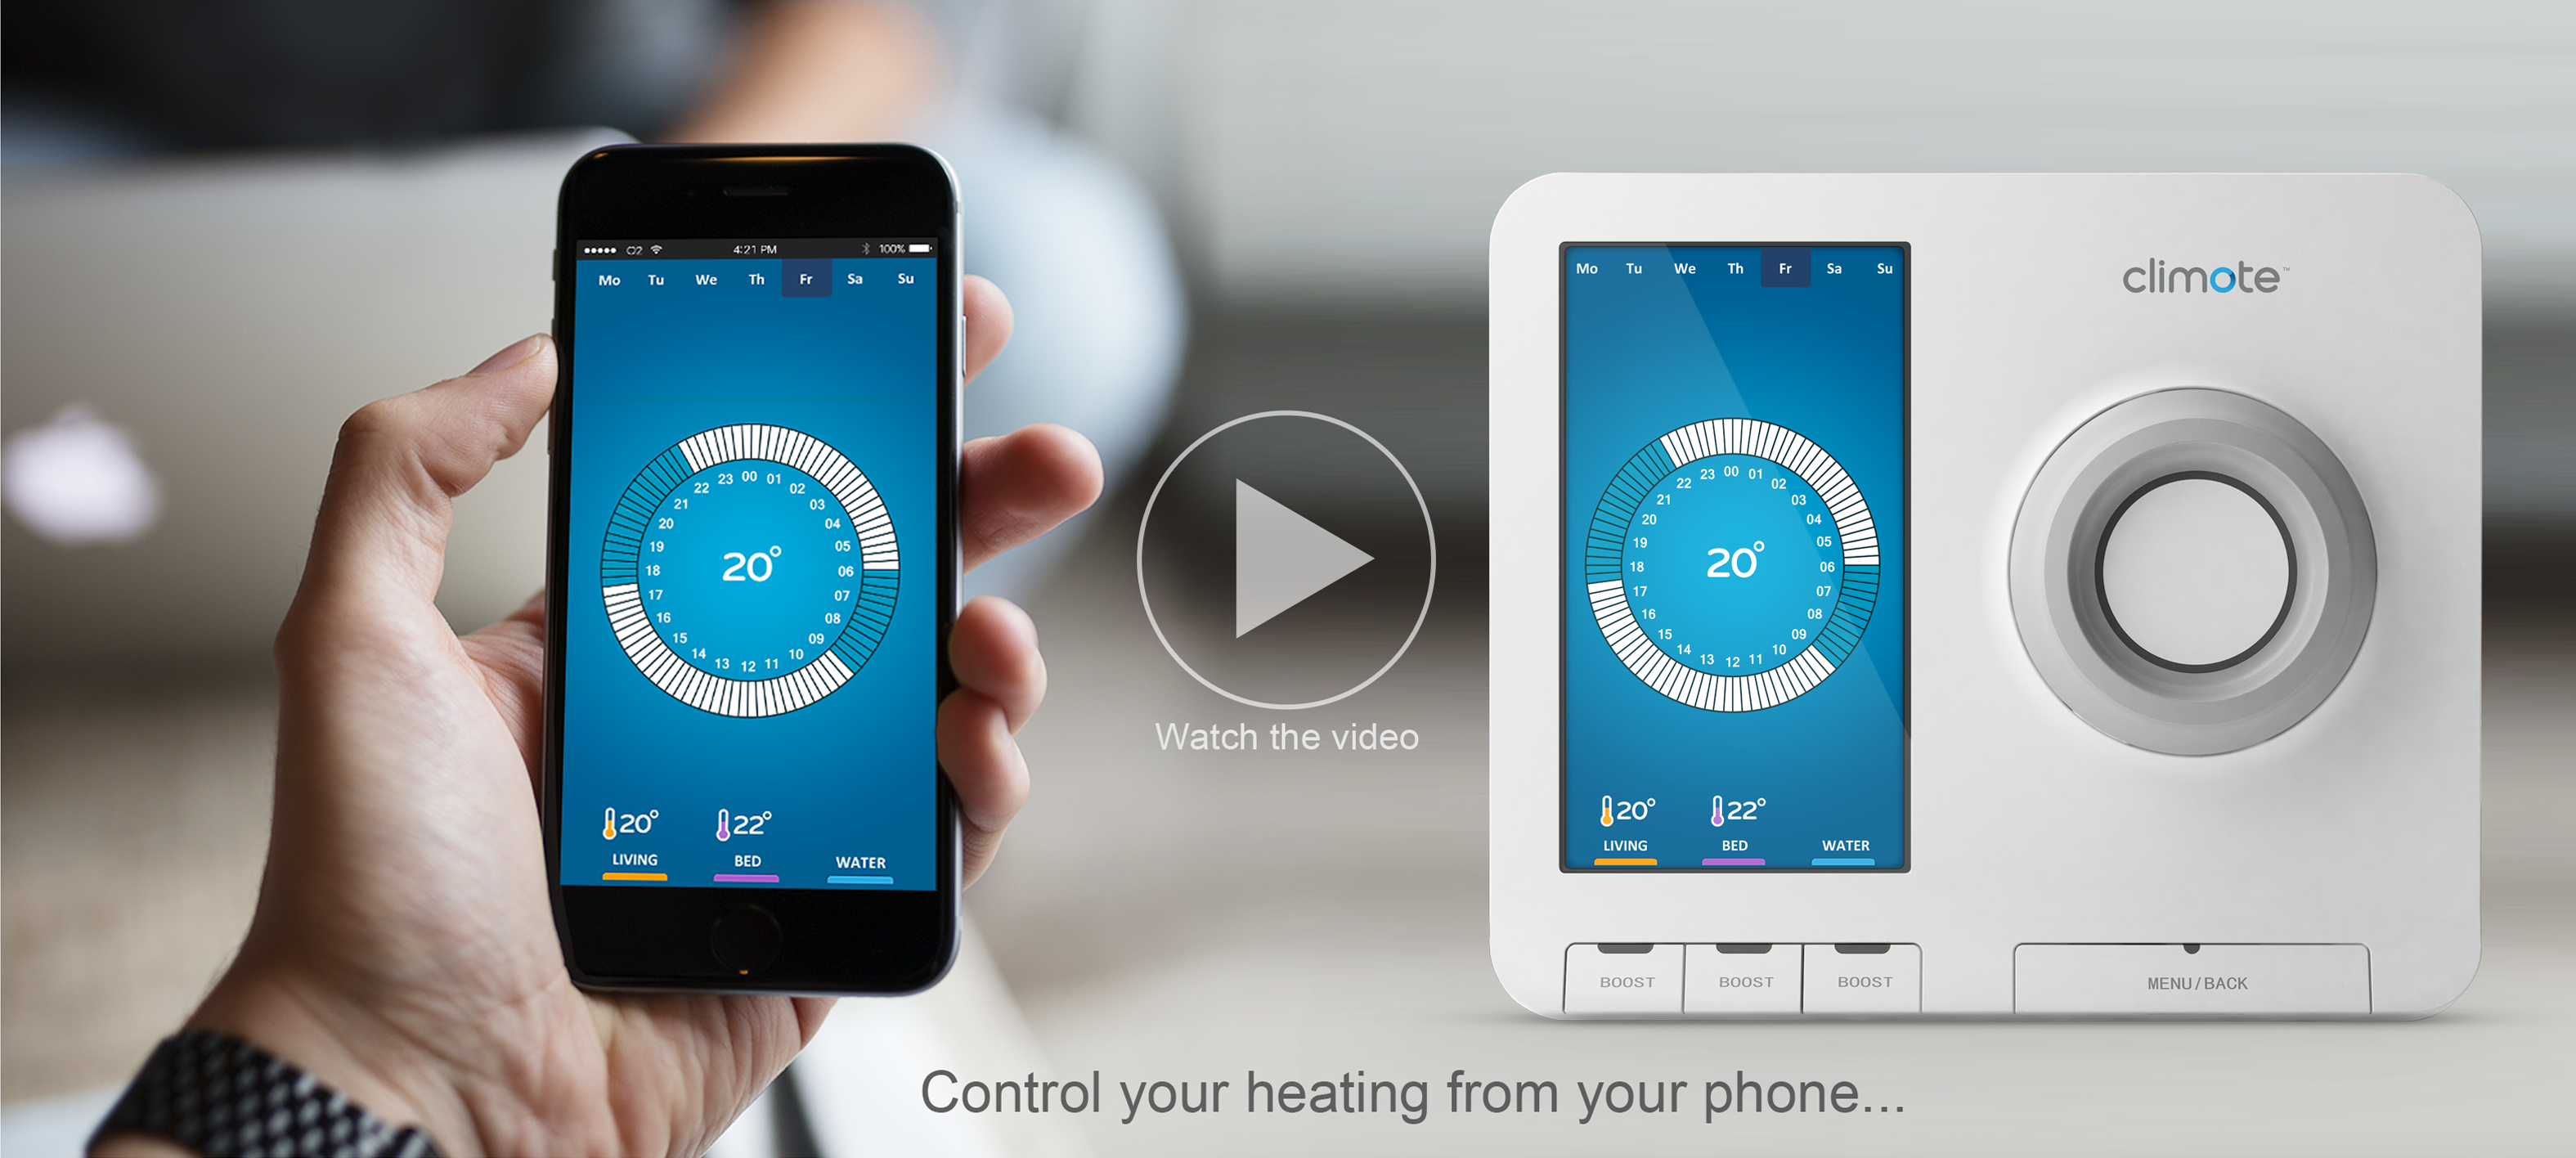 climote - total control of your home heating